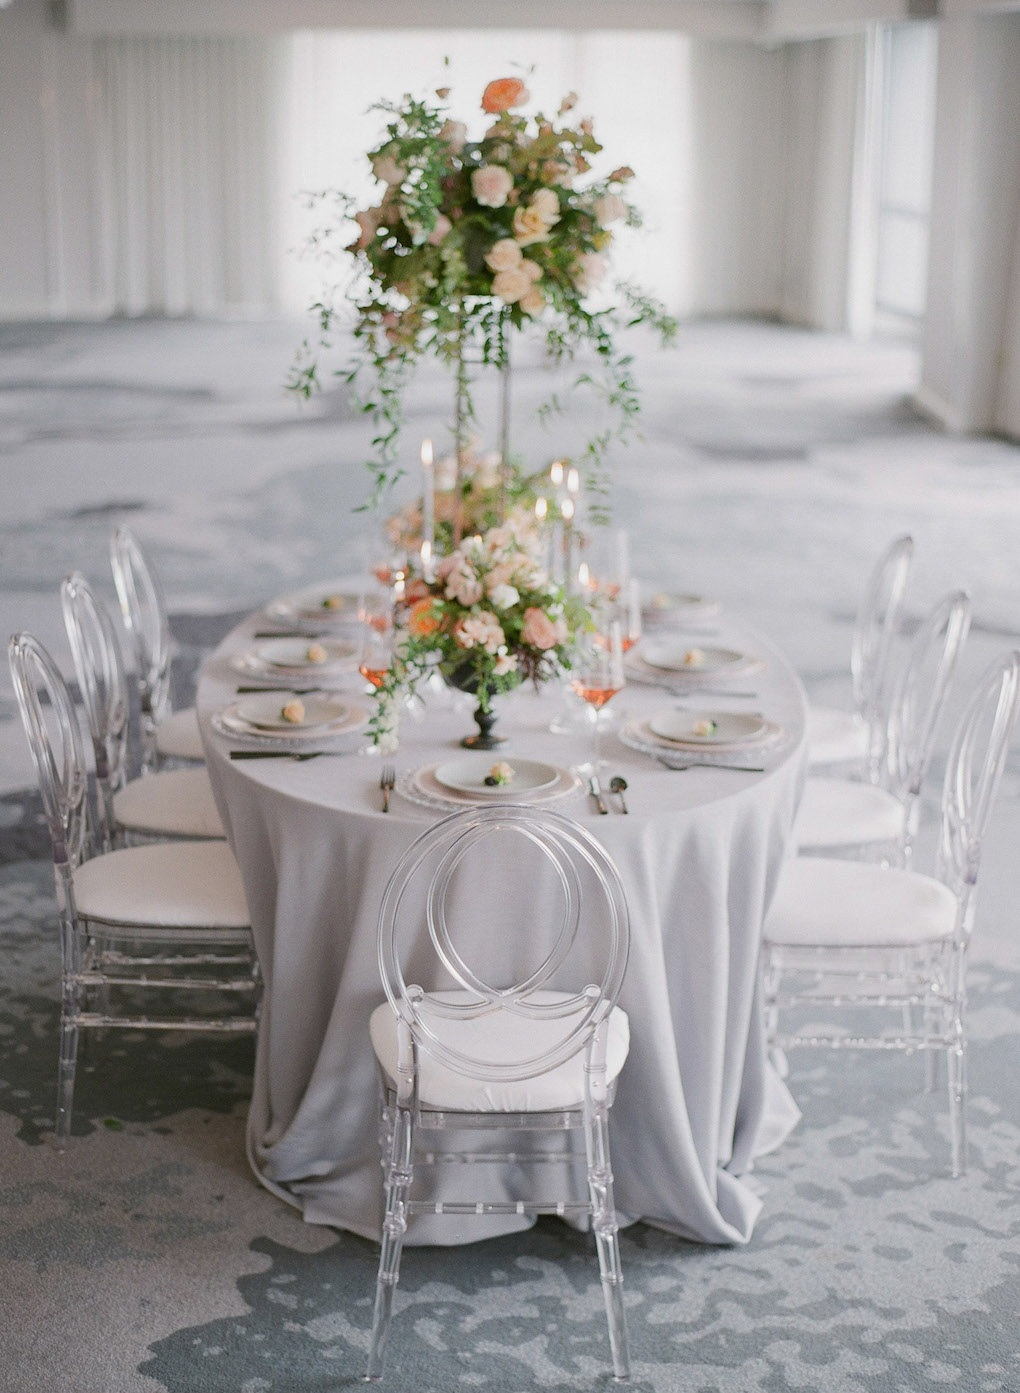 Monochromatic Wedding Color Scheme: Soft and Subtle Palettes of Spring Blossoms | Editorial Shoot at The Renaissance Pittsburgh by Exhale Events. See more inspiration at exhale-events.com!